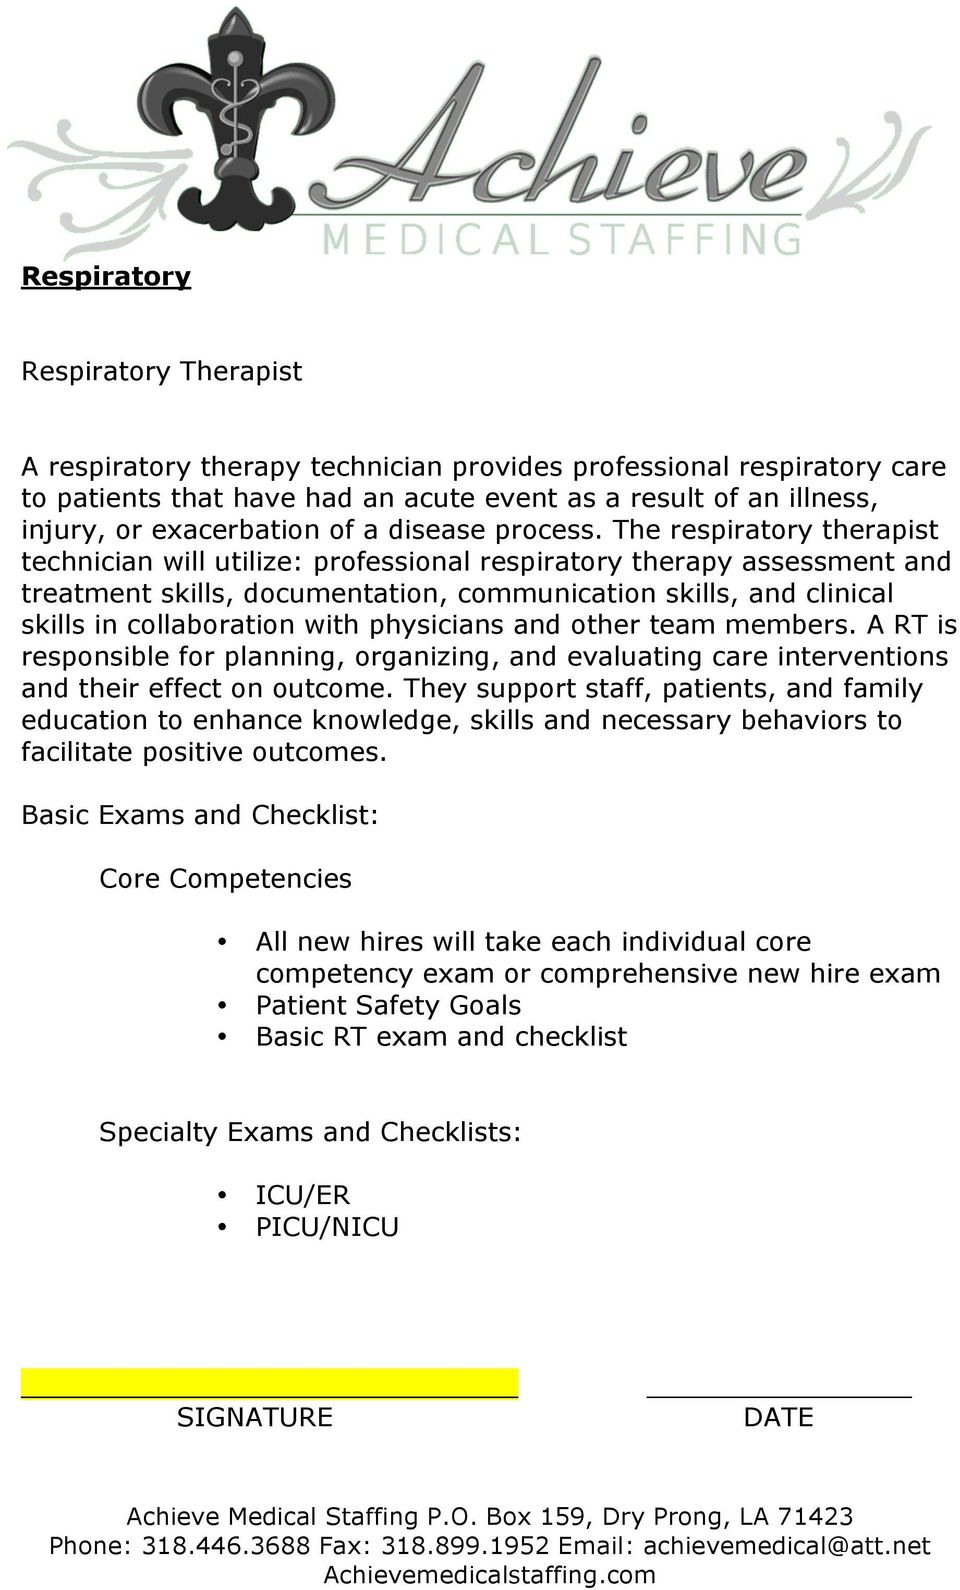 The respiratory therapist technician will utilize: professional respiratory therapy assessment and treatment skills, documentation, communication skills, and clinical skills in collaboration with